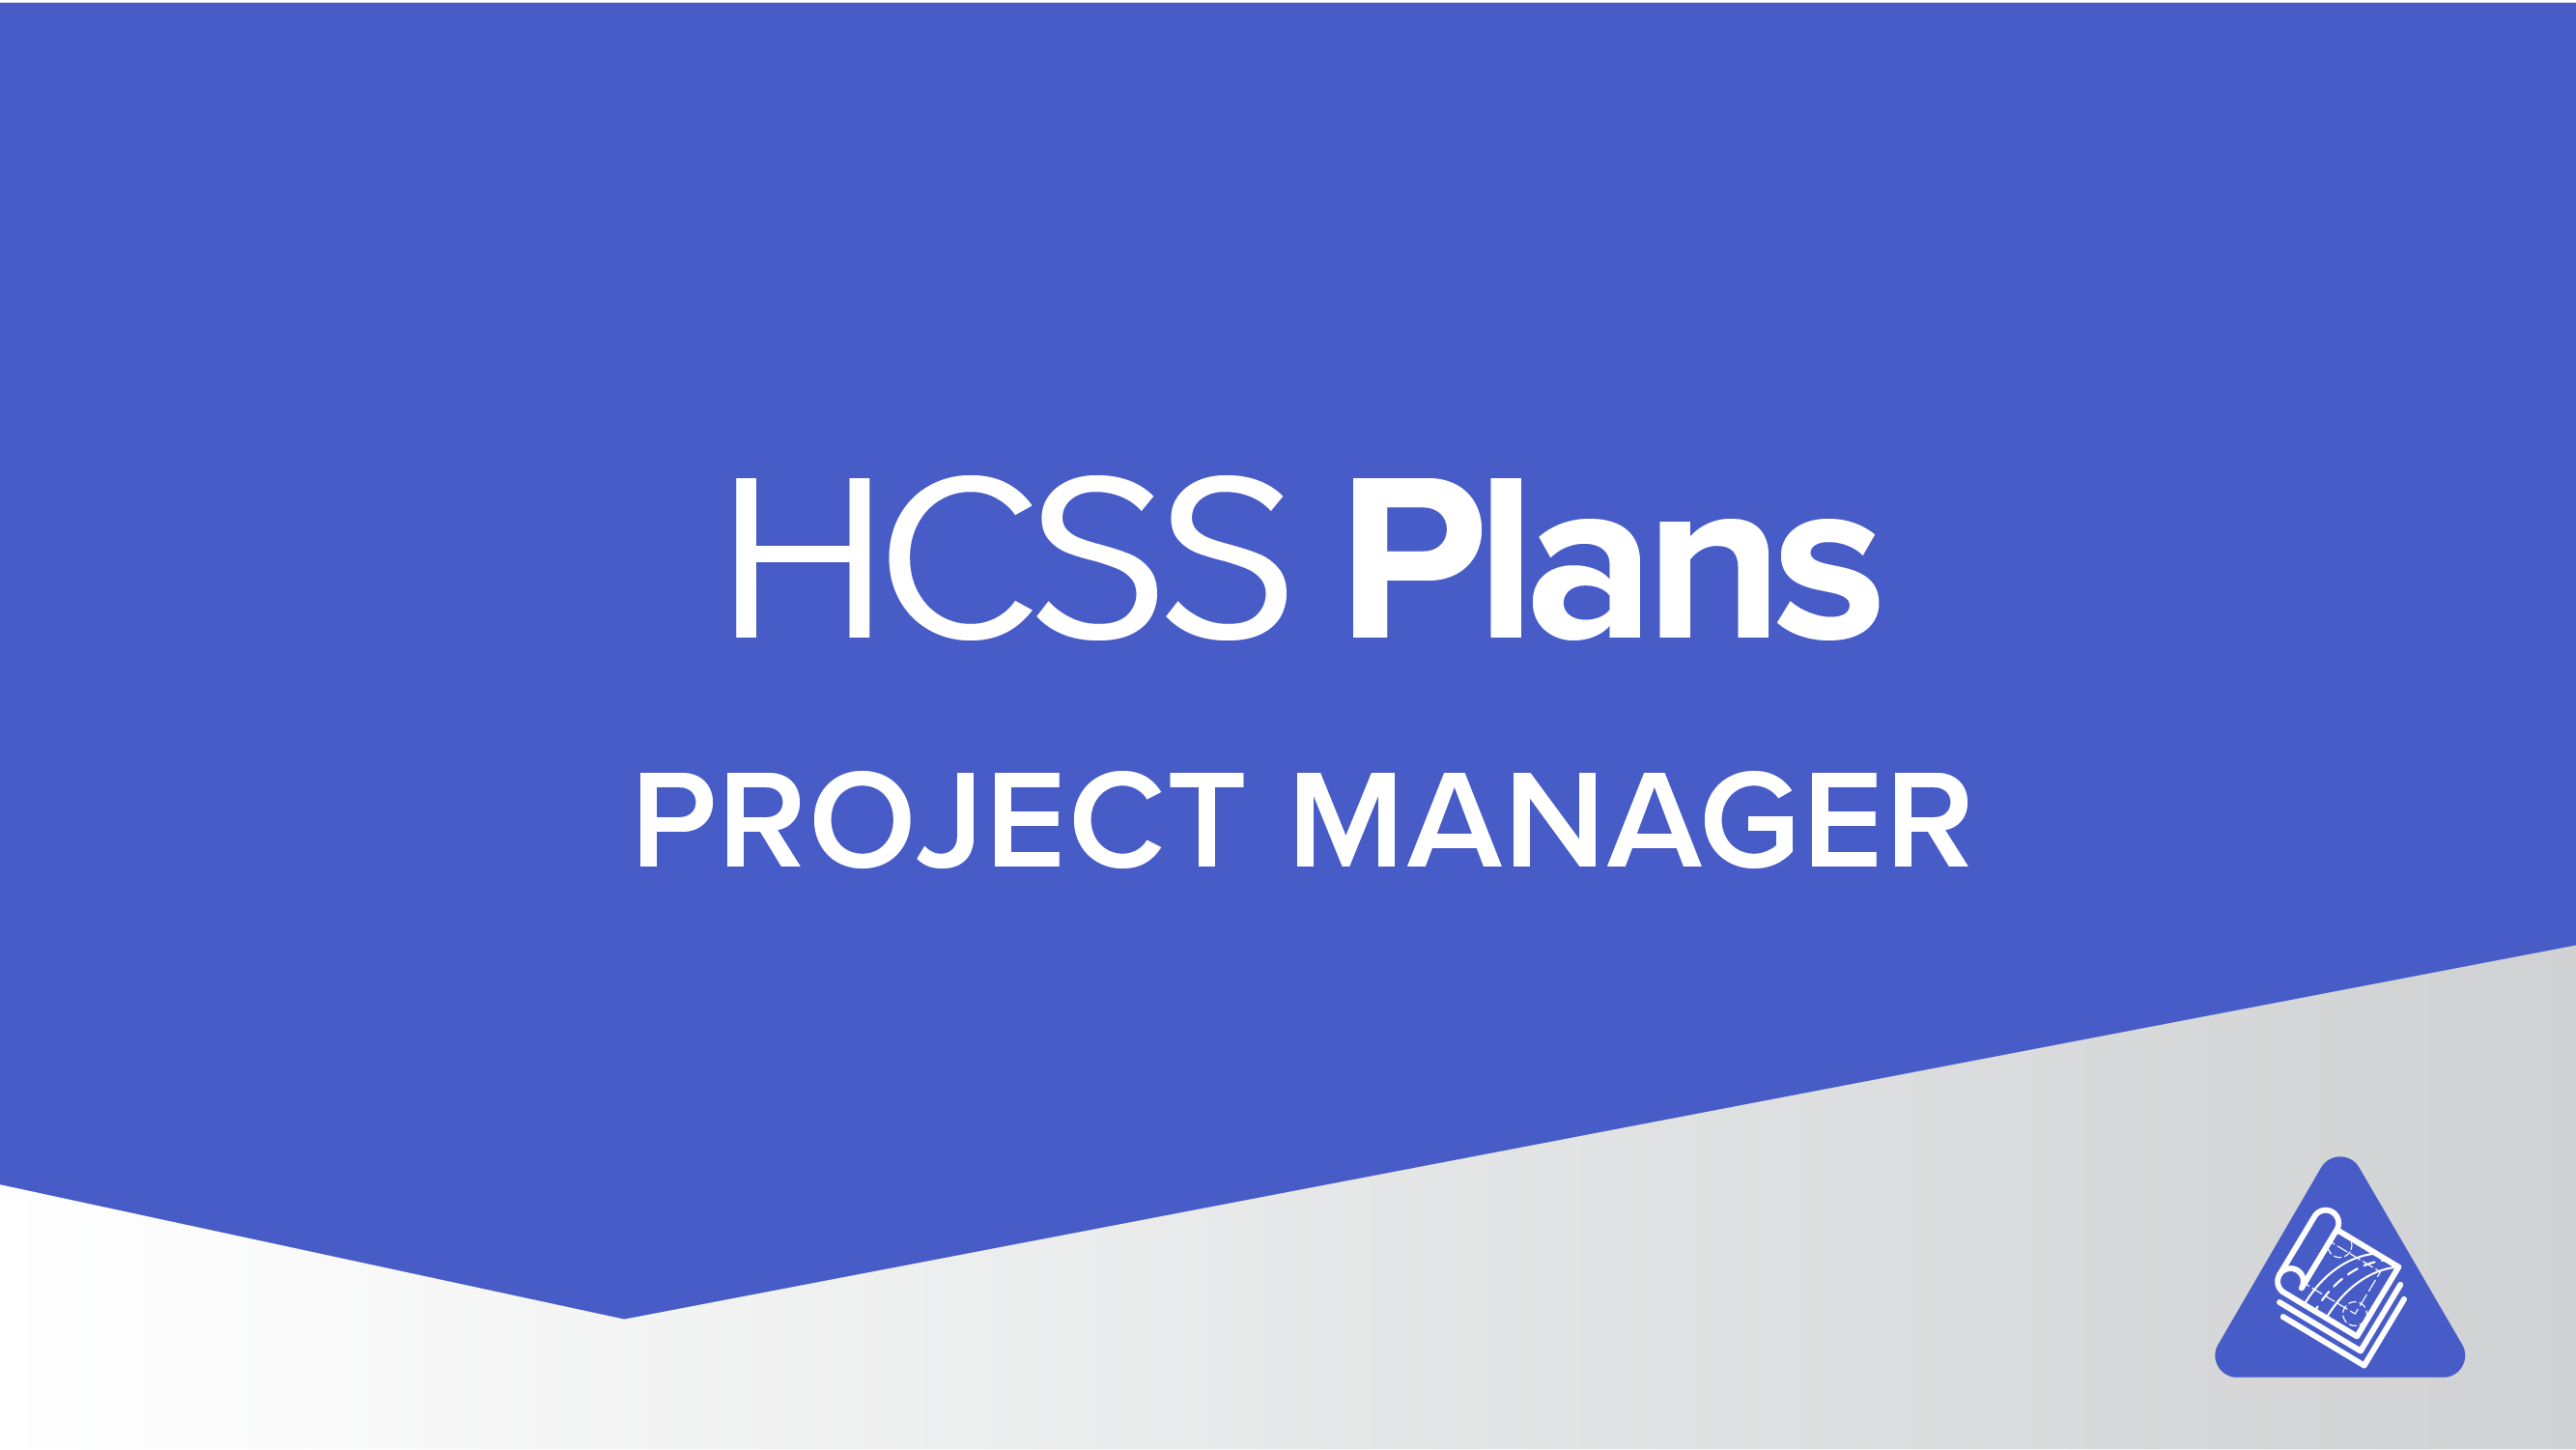 Implementation for HCSS Plans Project Managers